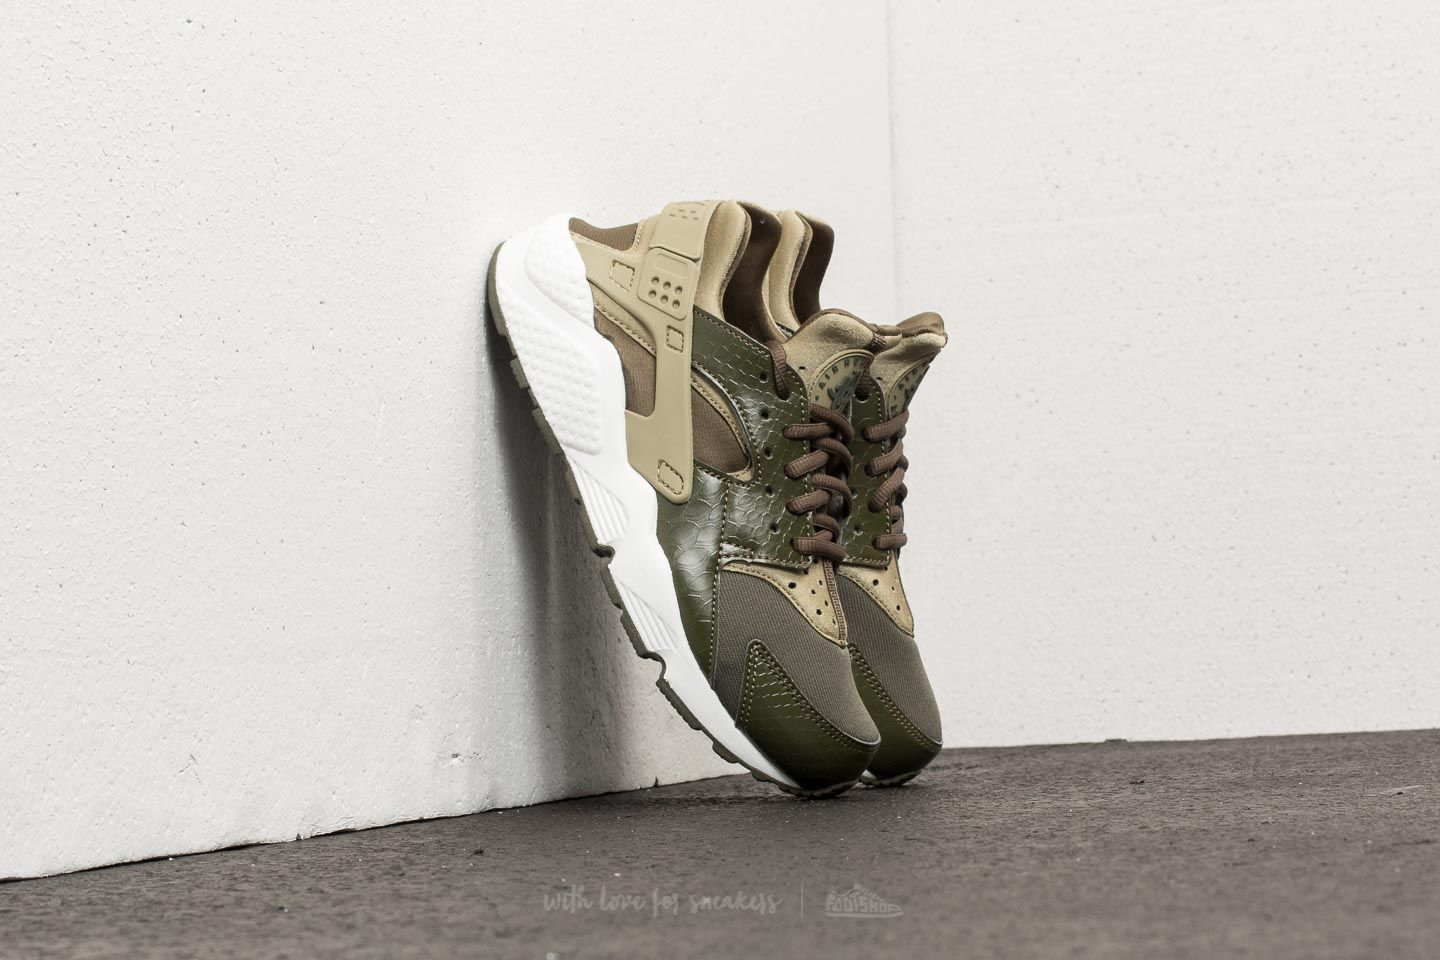 039c3df1926a Nike Wmns Air Huarache Run Neutral Olive  Cargo Khaki